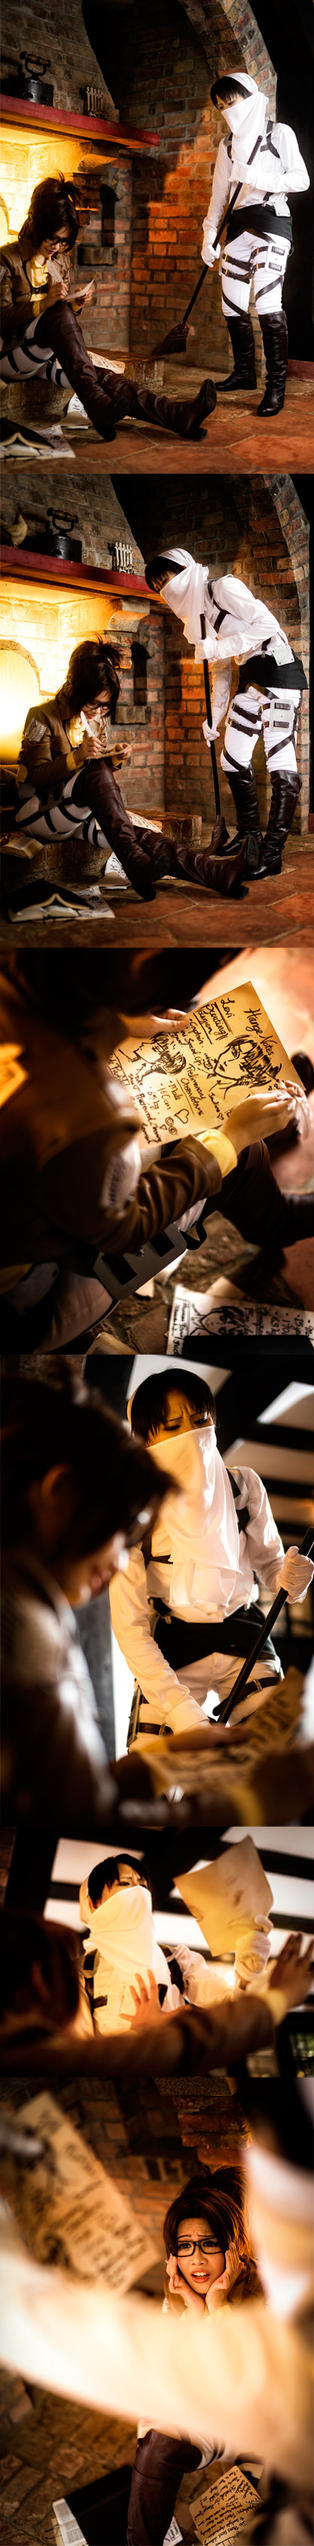 Shingeki no Kyojin: Caught in The Act by Itchy-Hands